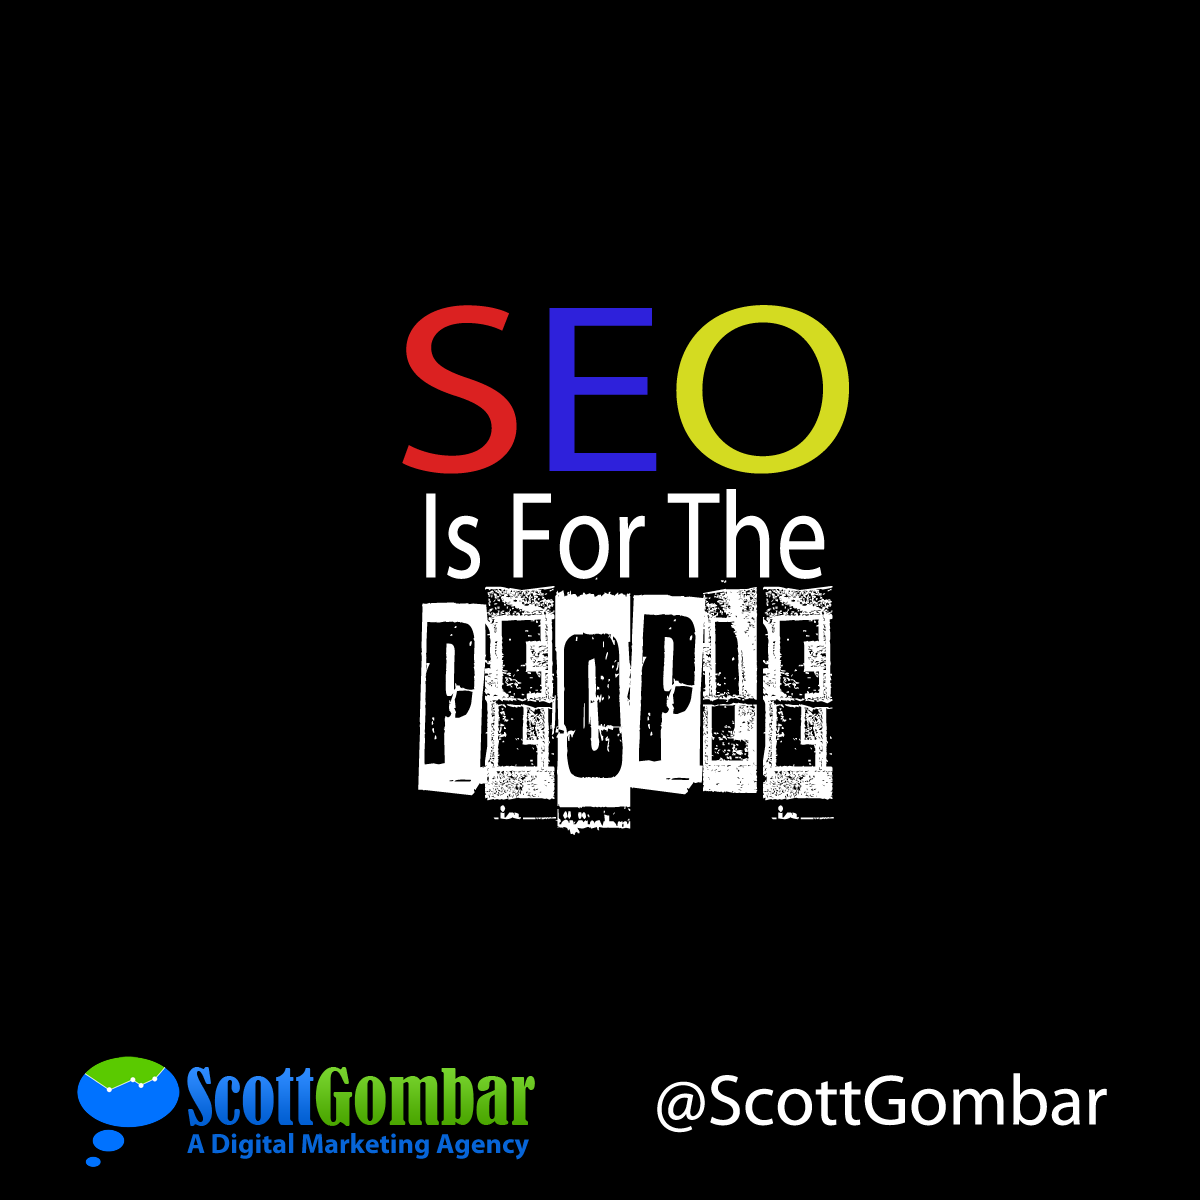 SEO is for the people